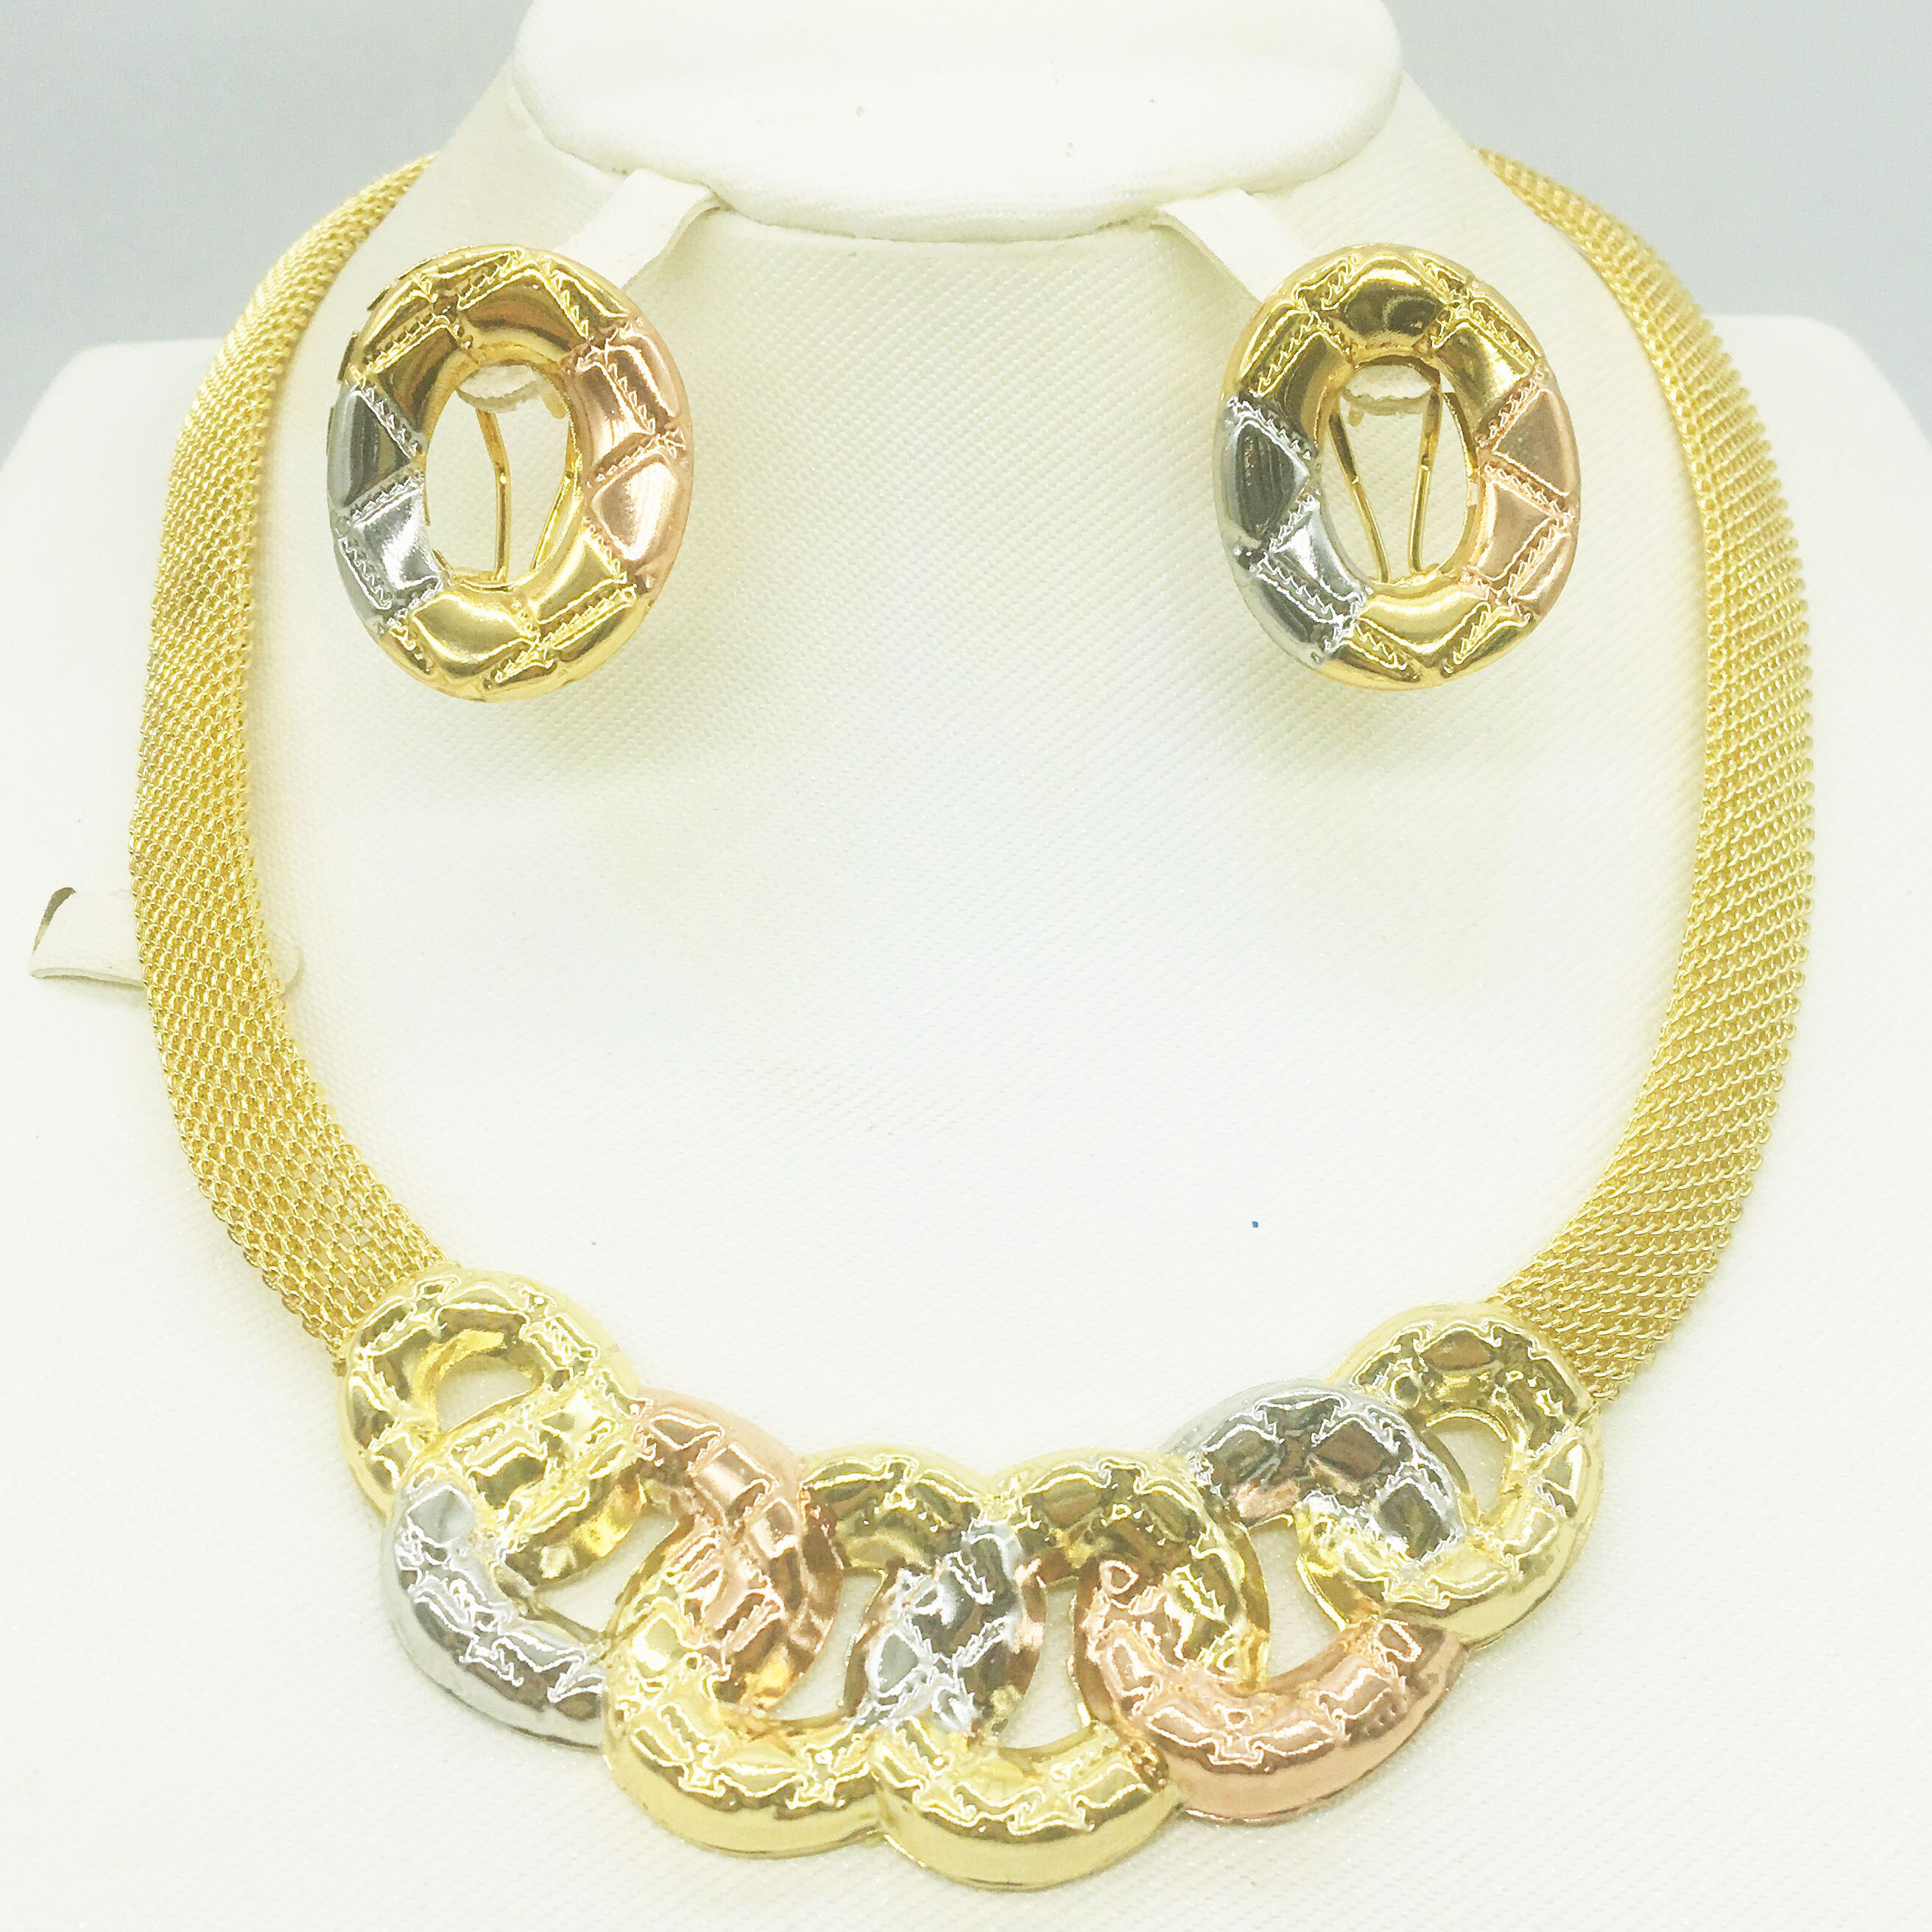 Dubai gold necklace earrings collection fashion <font><b>Nigeria</b></font> wedding African pearl <font><b>jewelry</b></font> collection Italian <font><b>women's</b></font> <font><b>jewelry</b></font> <font><b>set</b></font> image